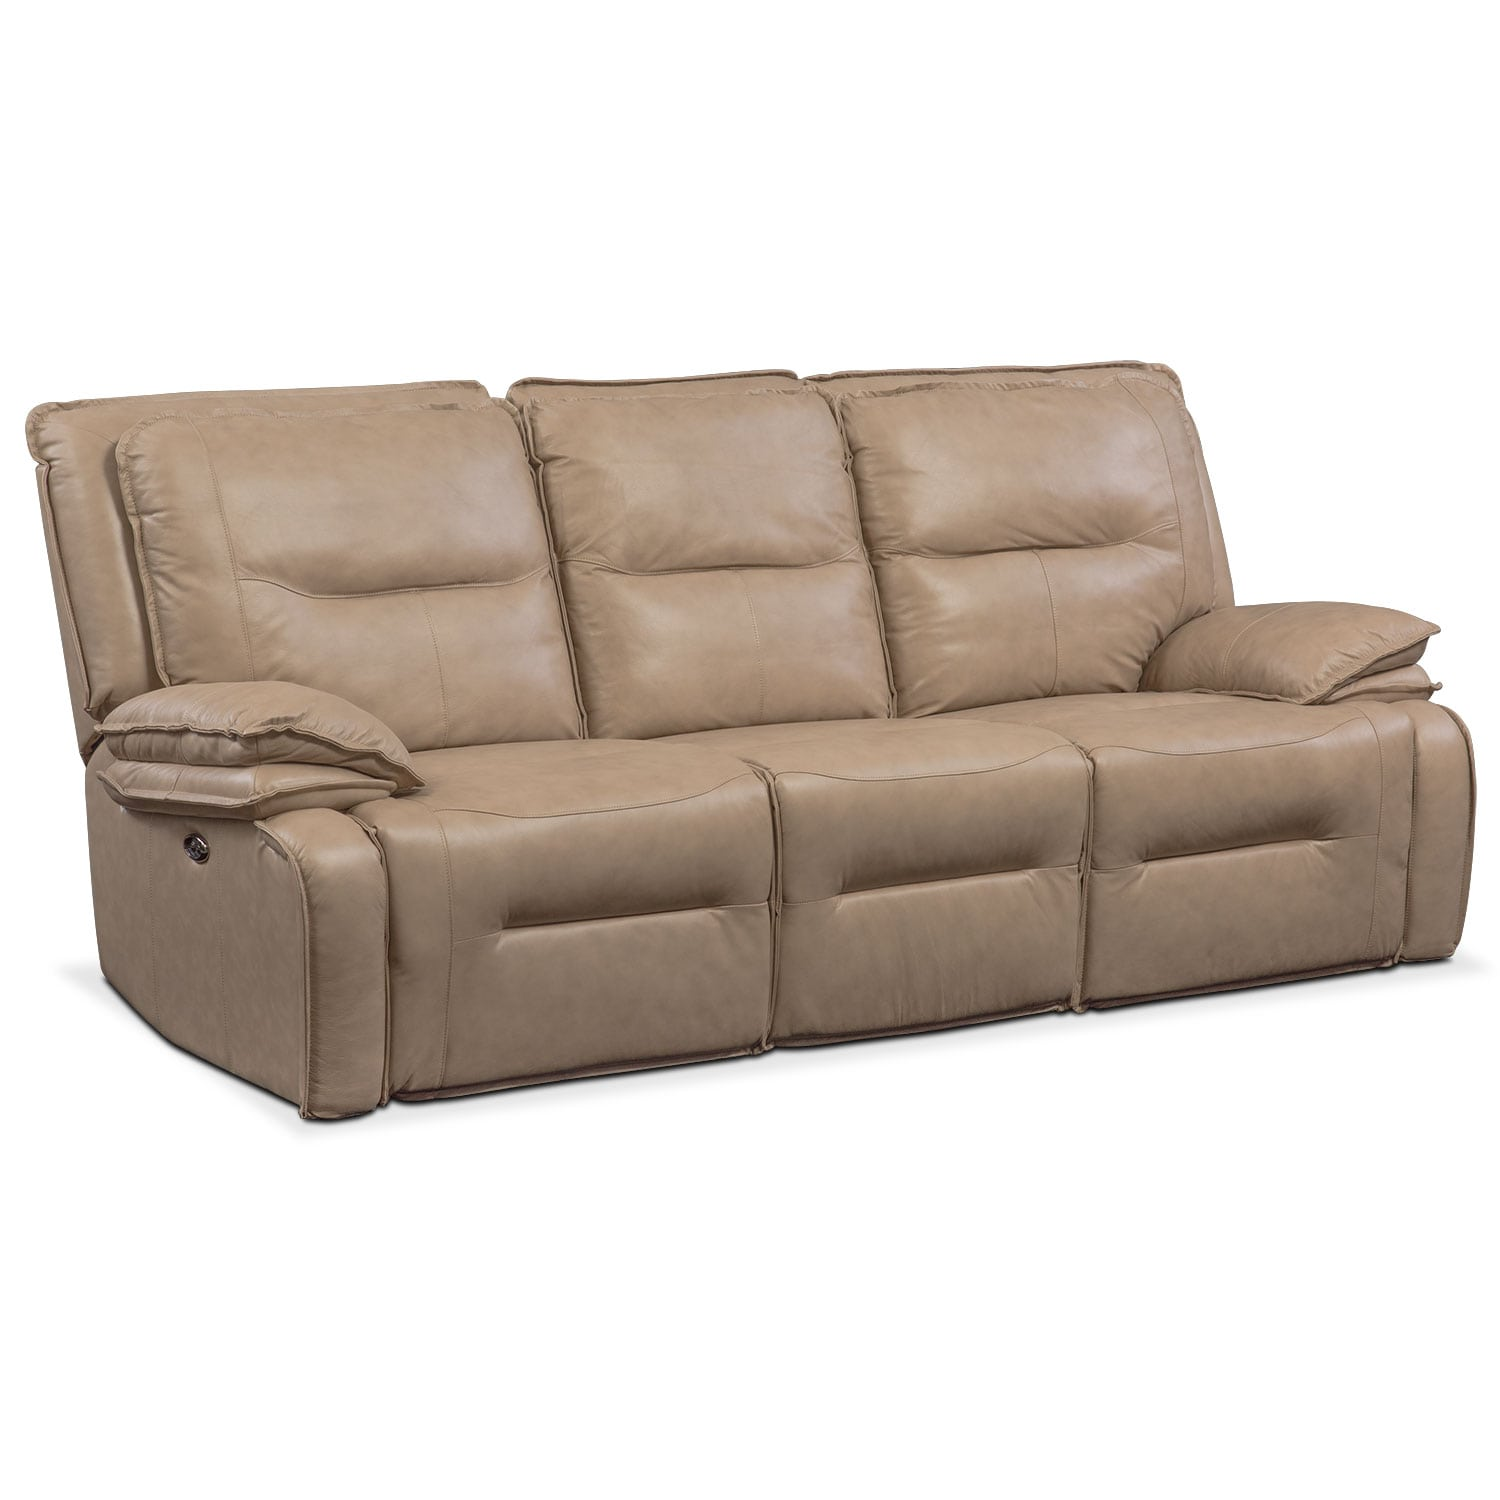 Nikki 3-Piece Power Reclining Sectional with 2 Recliners - Taupe